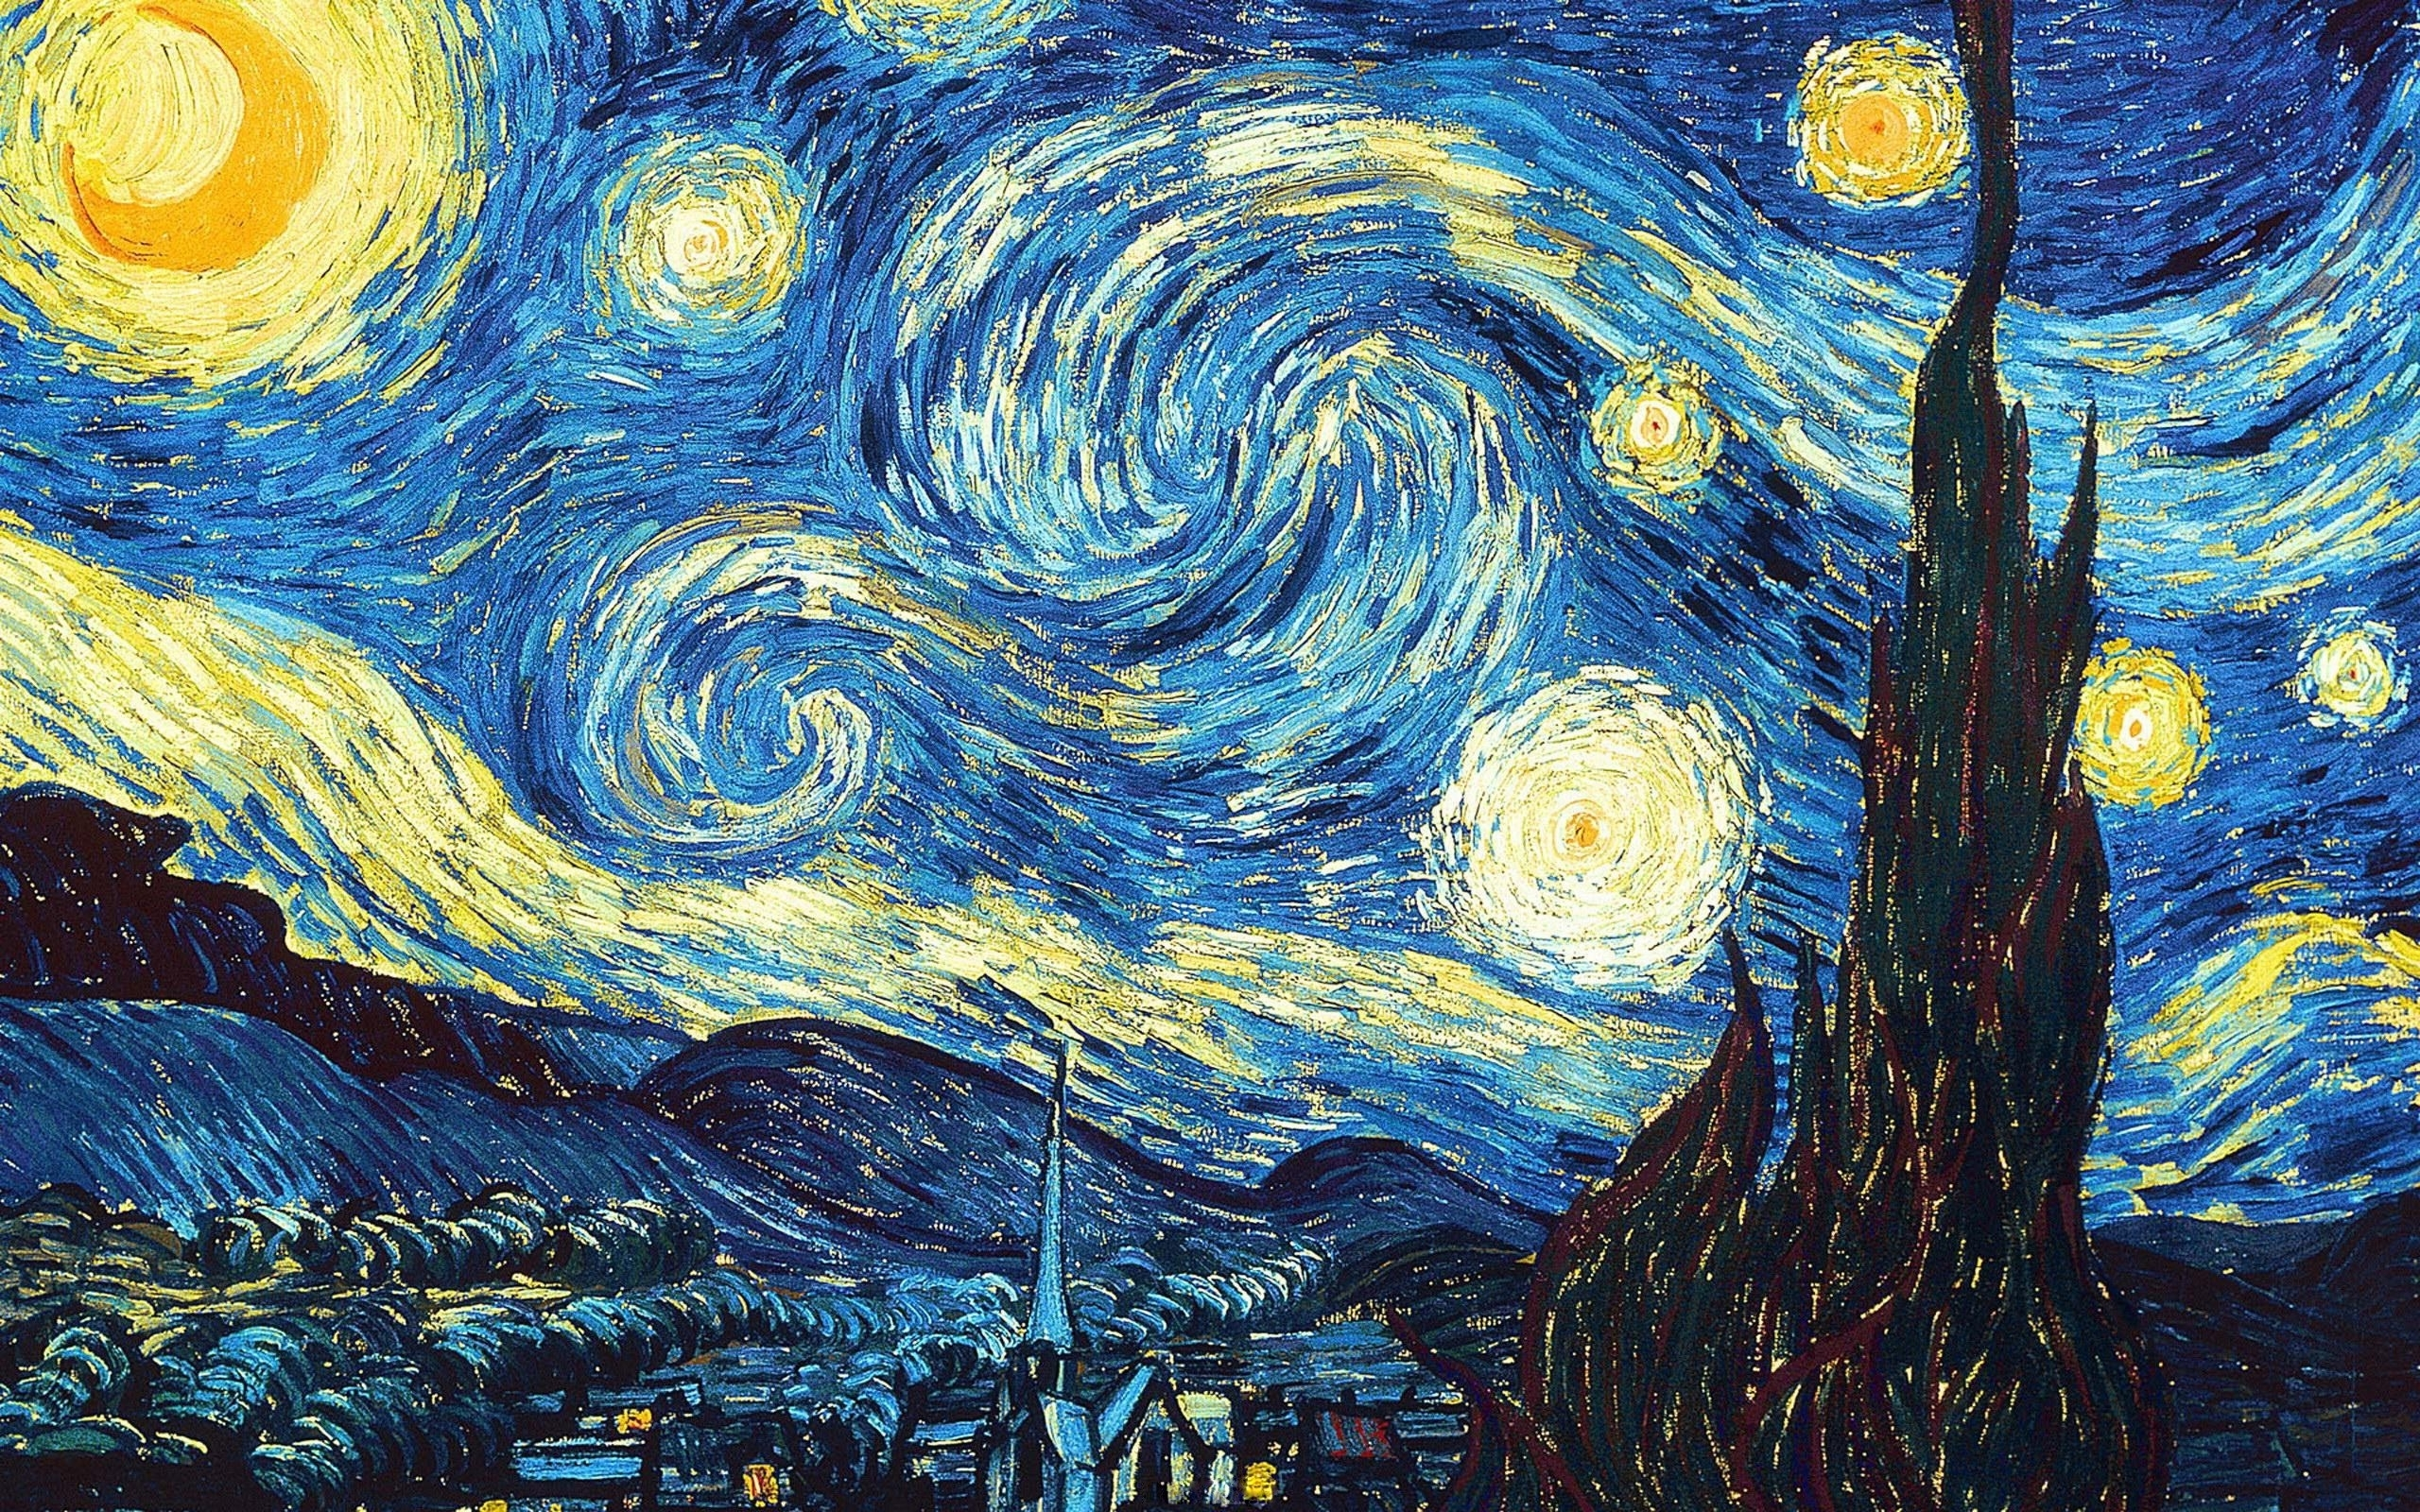 vincent van gogh wallpapers, hd vincent van gogh wallpapers